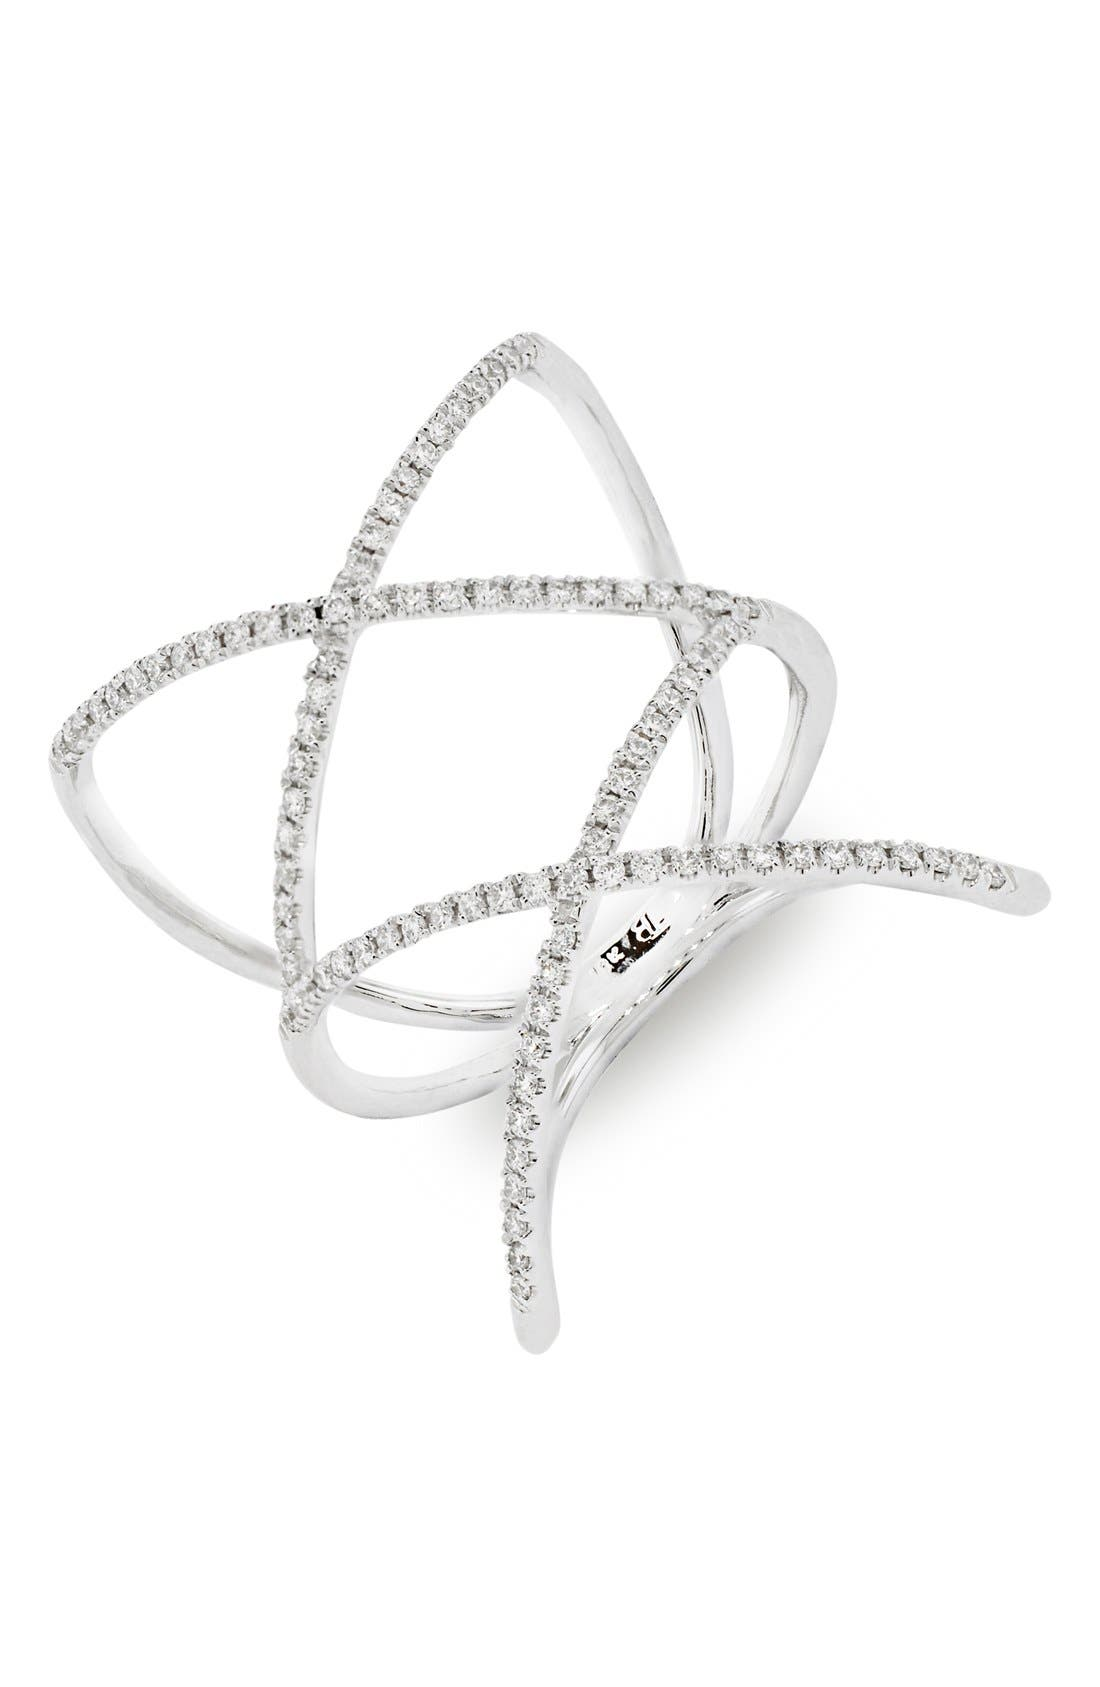 BONY LEVY, Diamond Double Crisscross Ring, Main thumbnail 1, color, WHITE GOLD